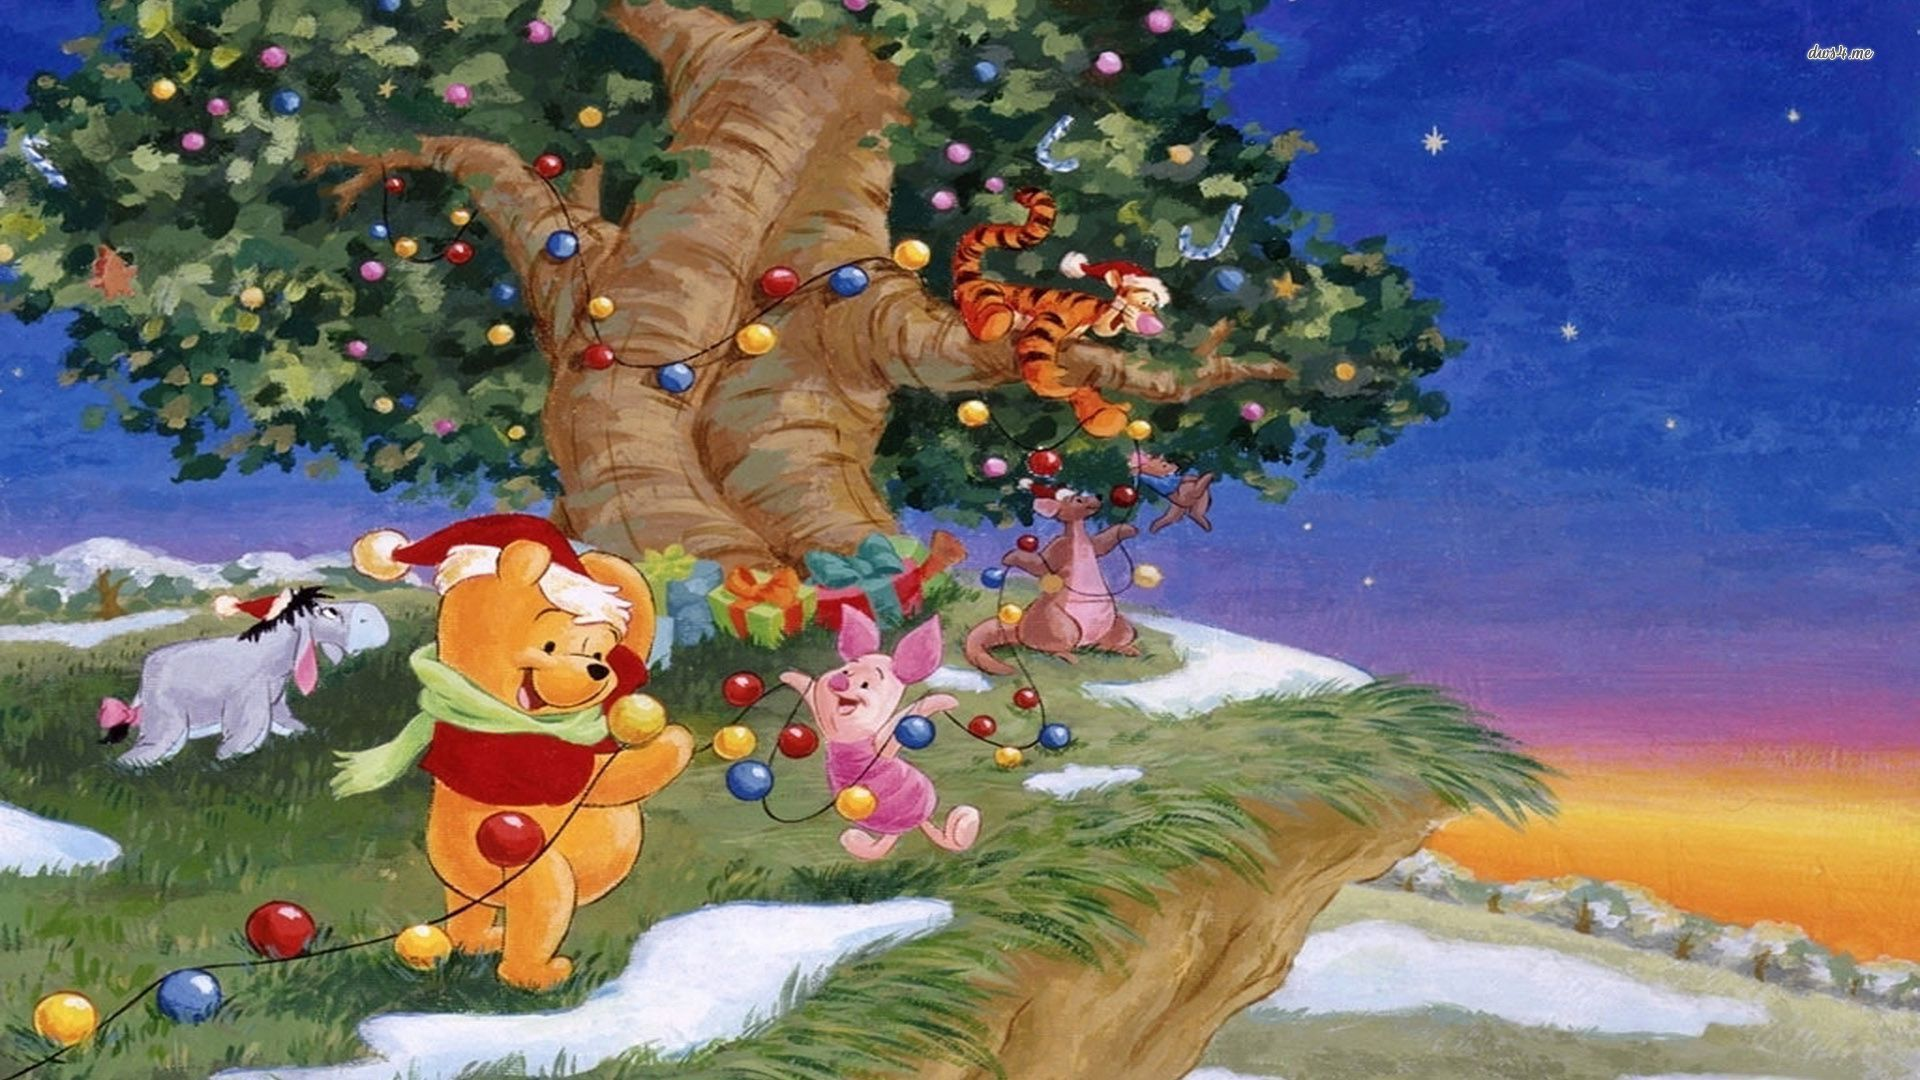 Amazing Wallpaper Halloween Winnie The Pooh - b90ffde2e9ef3dc9c3616fcfc9f8b404  Collection_911348.jpg